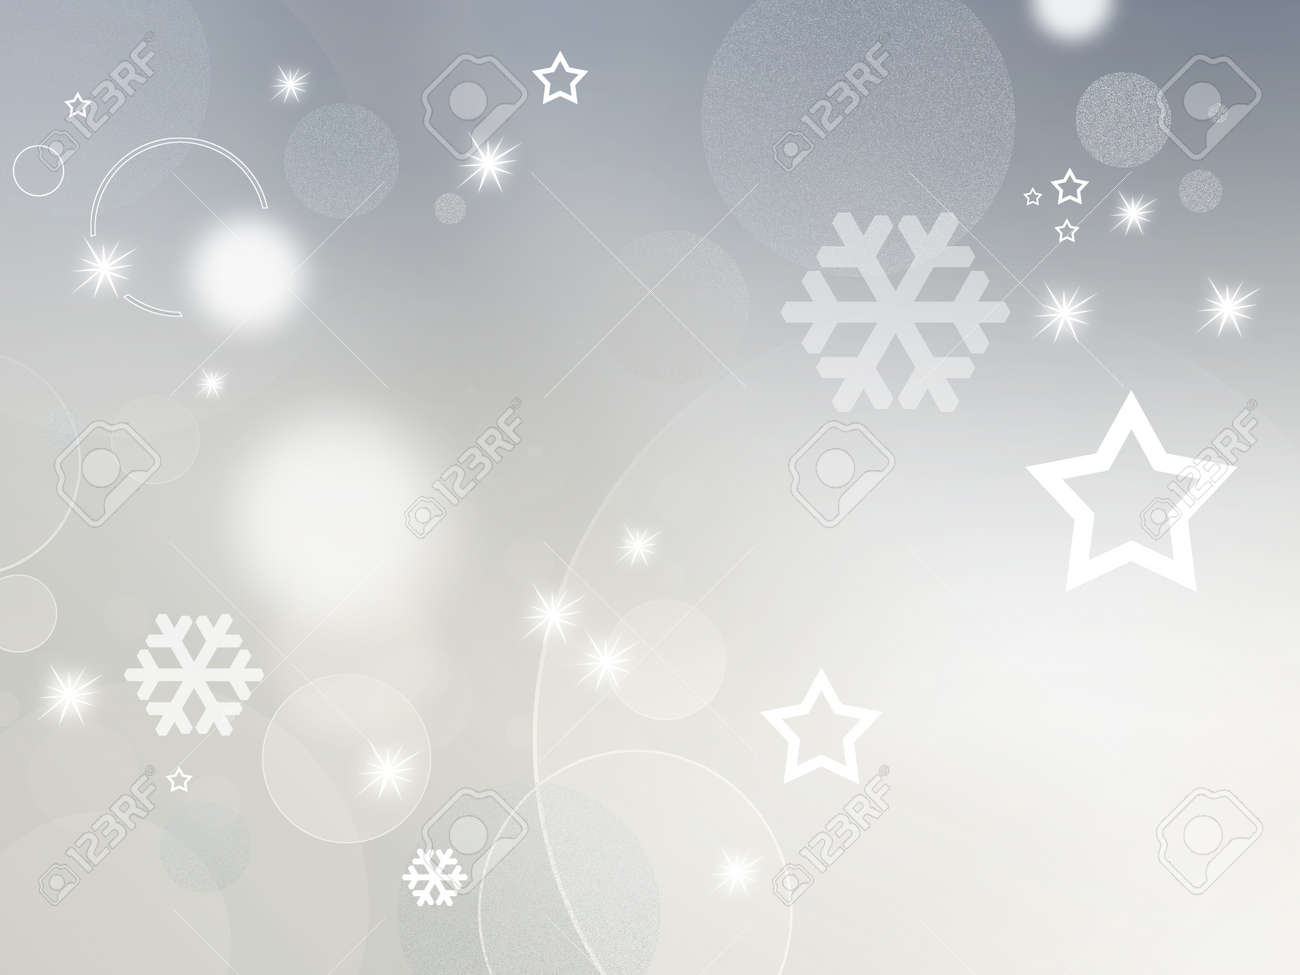 light grey and white background with shiny stars circles and snowflakes abstract design for